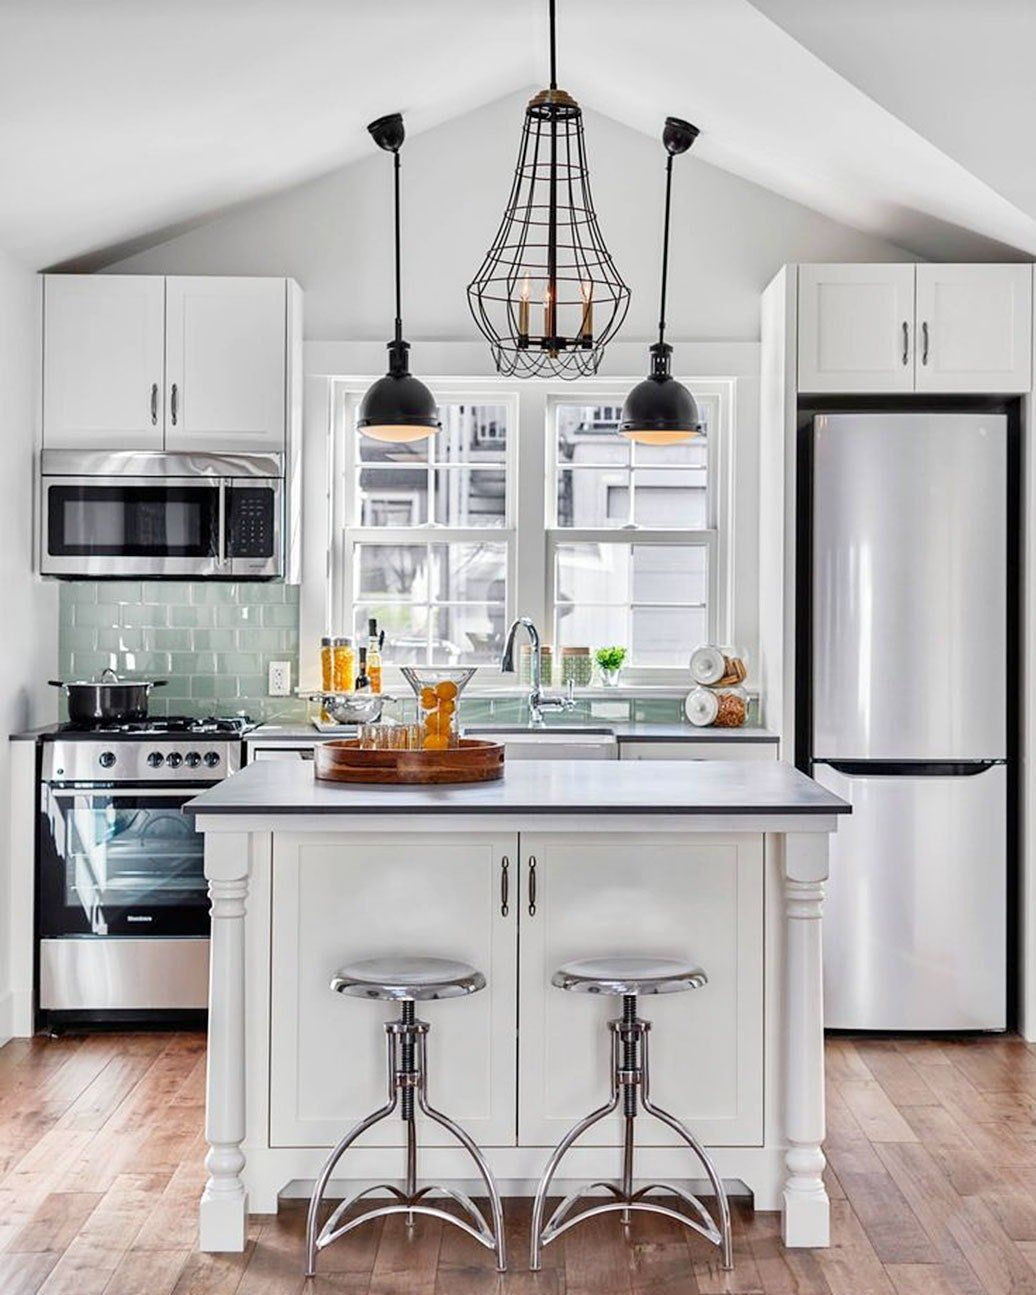 5 Smart Ways To Fit A Kitchen Island In A Small Space Small Kitchen Layouts Kitchen Design Small Kitchen Remodel Small